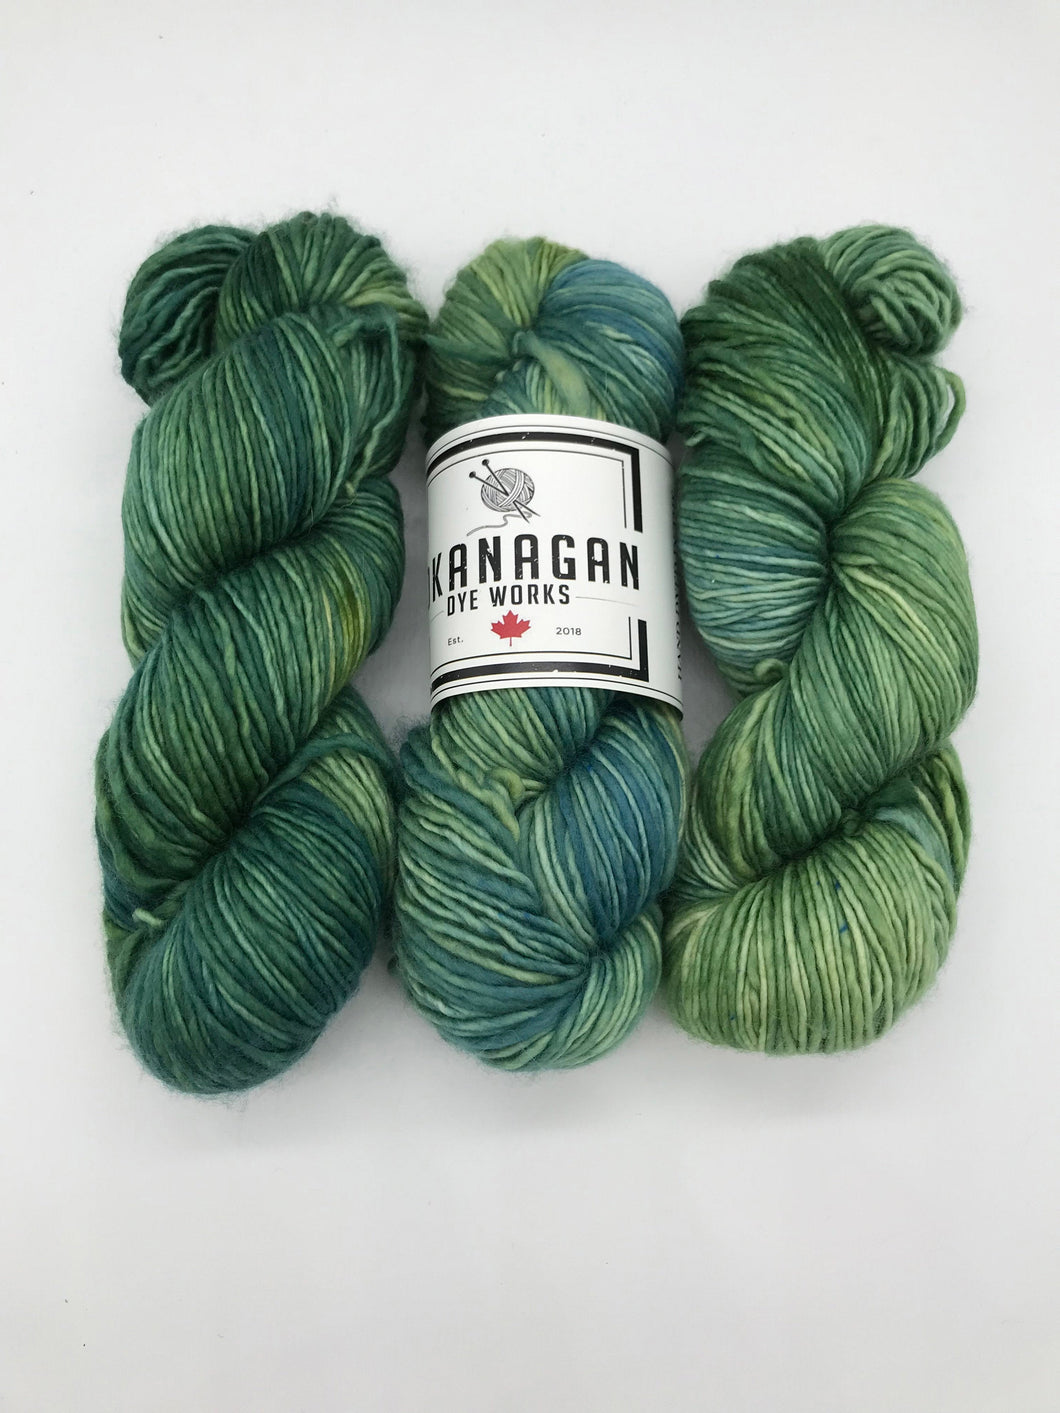 The Green Mile - Hand Dyed Worsted - Single - SW 100% Merino in Sage Green for knitting and crochet yarn